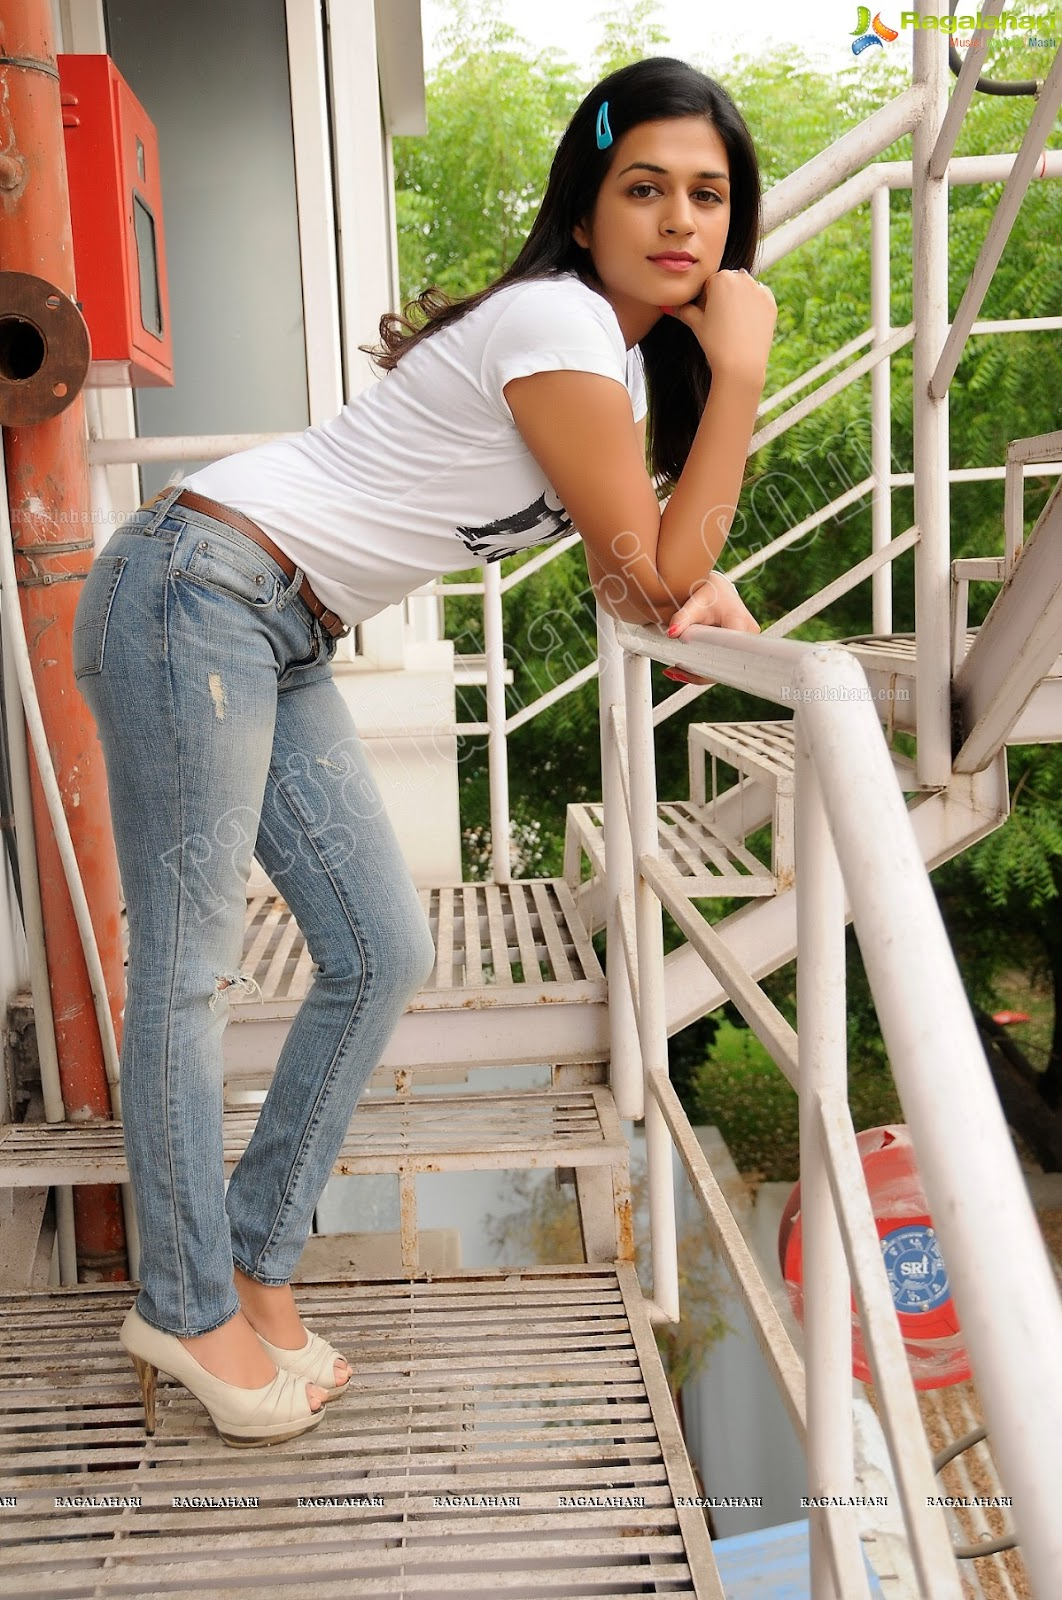 Bolly break news latters shraddha das white top blue jeans hot